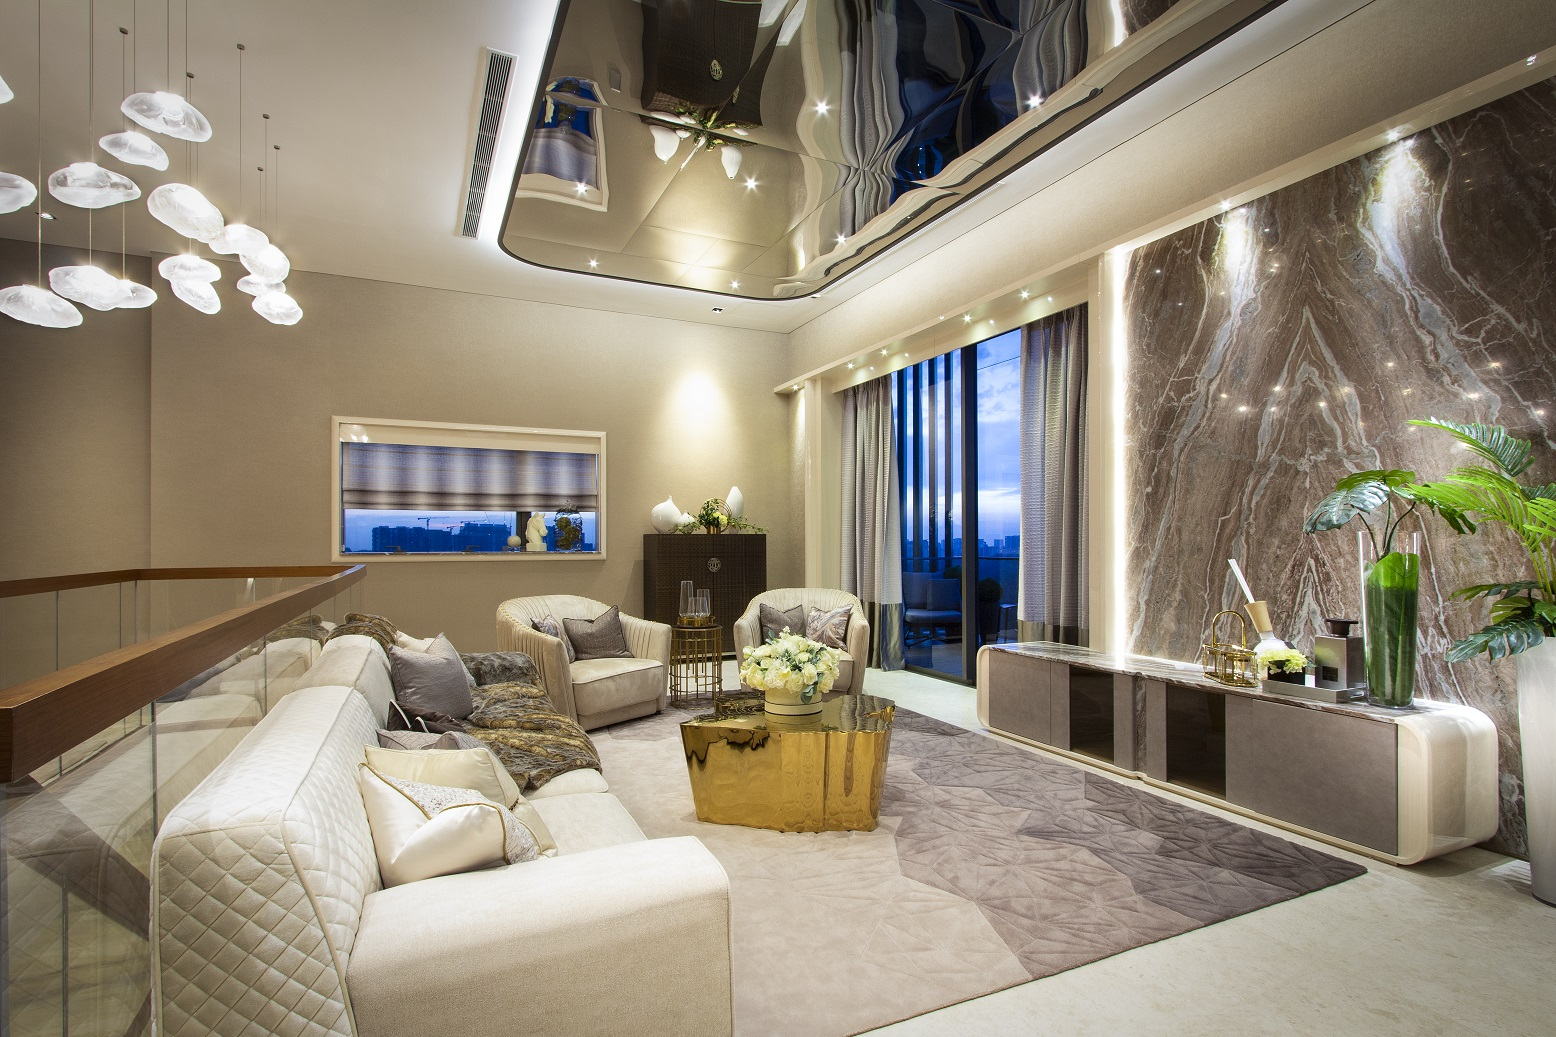 The 6,555 sq ft duplex penthouse at 3 Orchard By-the-Park that was sold furnished for $31.5 million ($4,806 psf) [Photo: SuMisura]